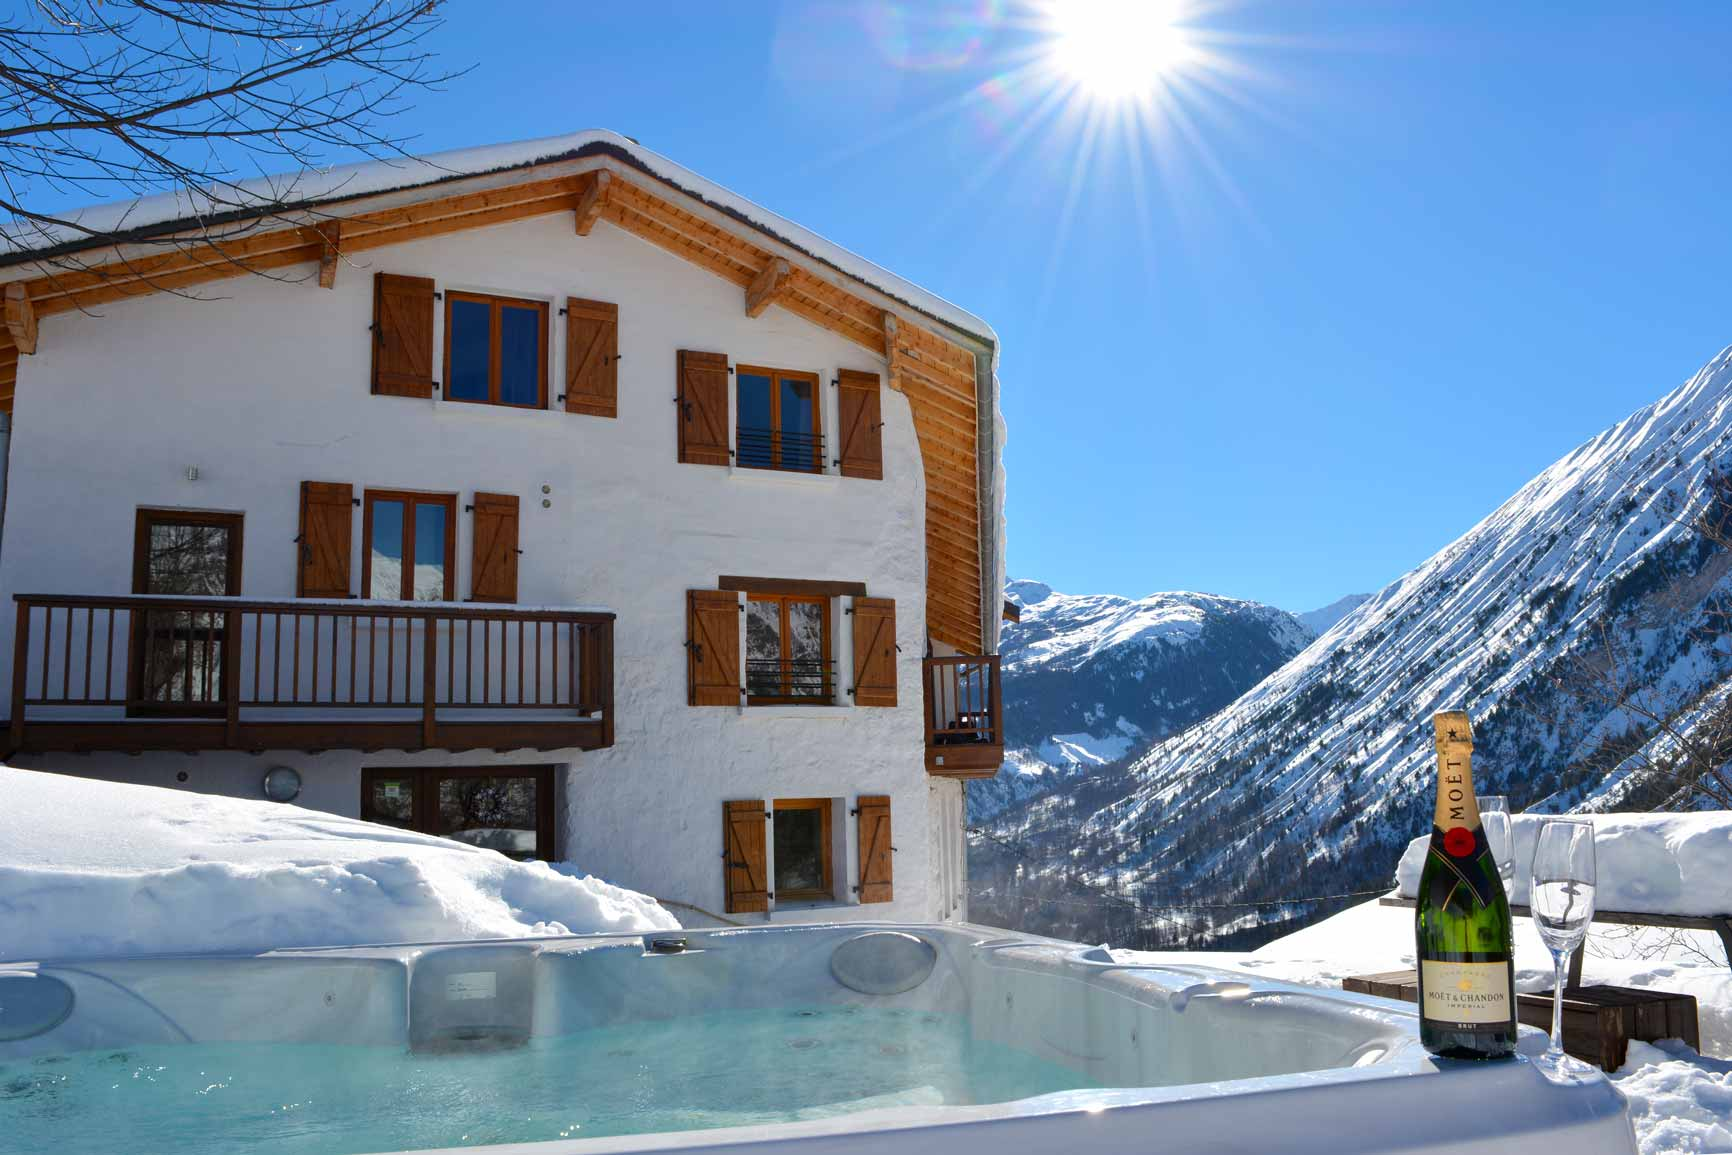 Chalet Broski - Our Luxury Catered Chalet